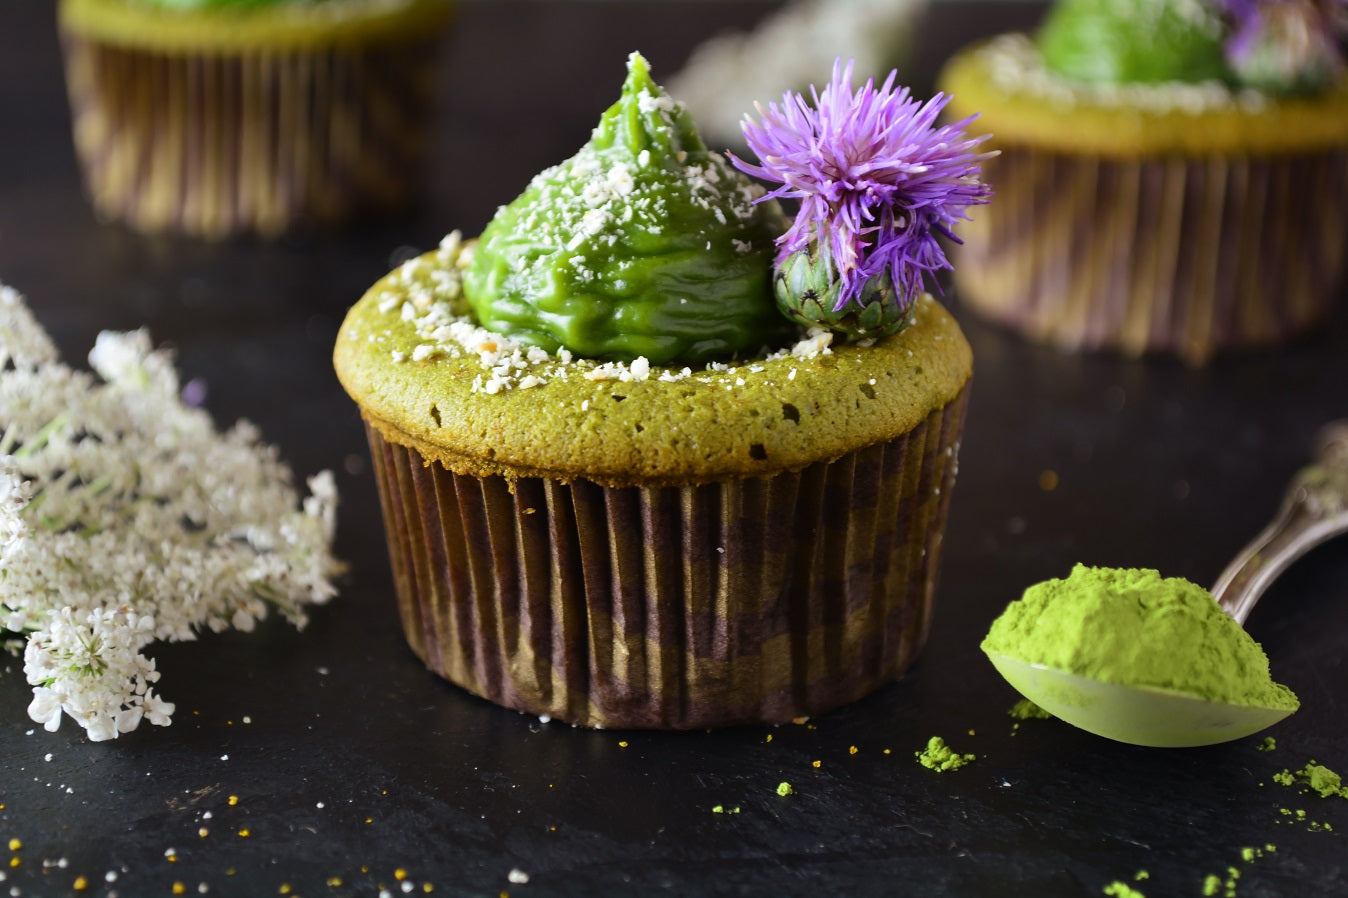 Matcha Cupcakes With Chocolate and Heavy Cream Topping